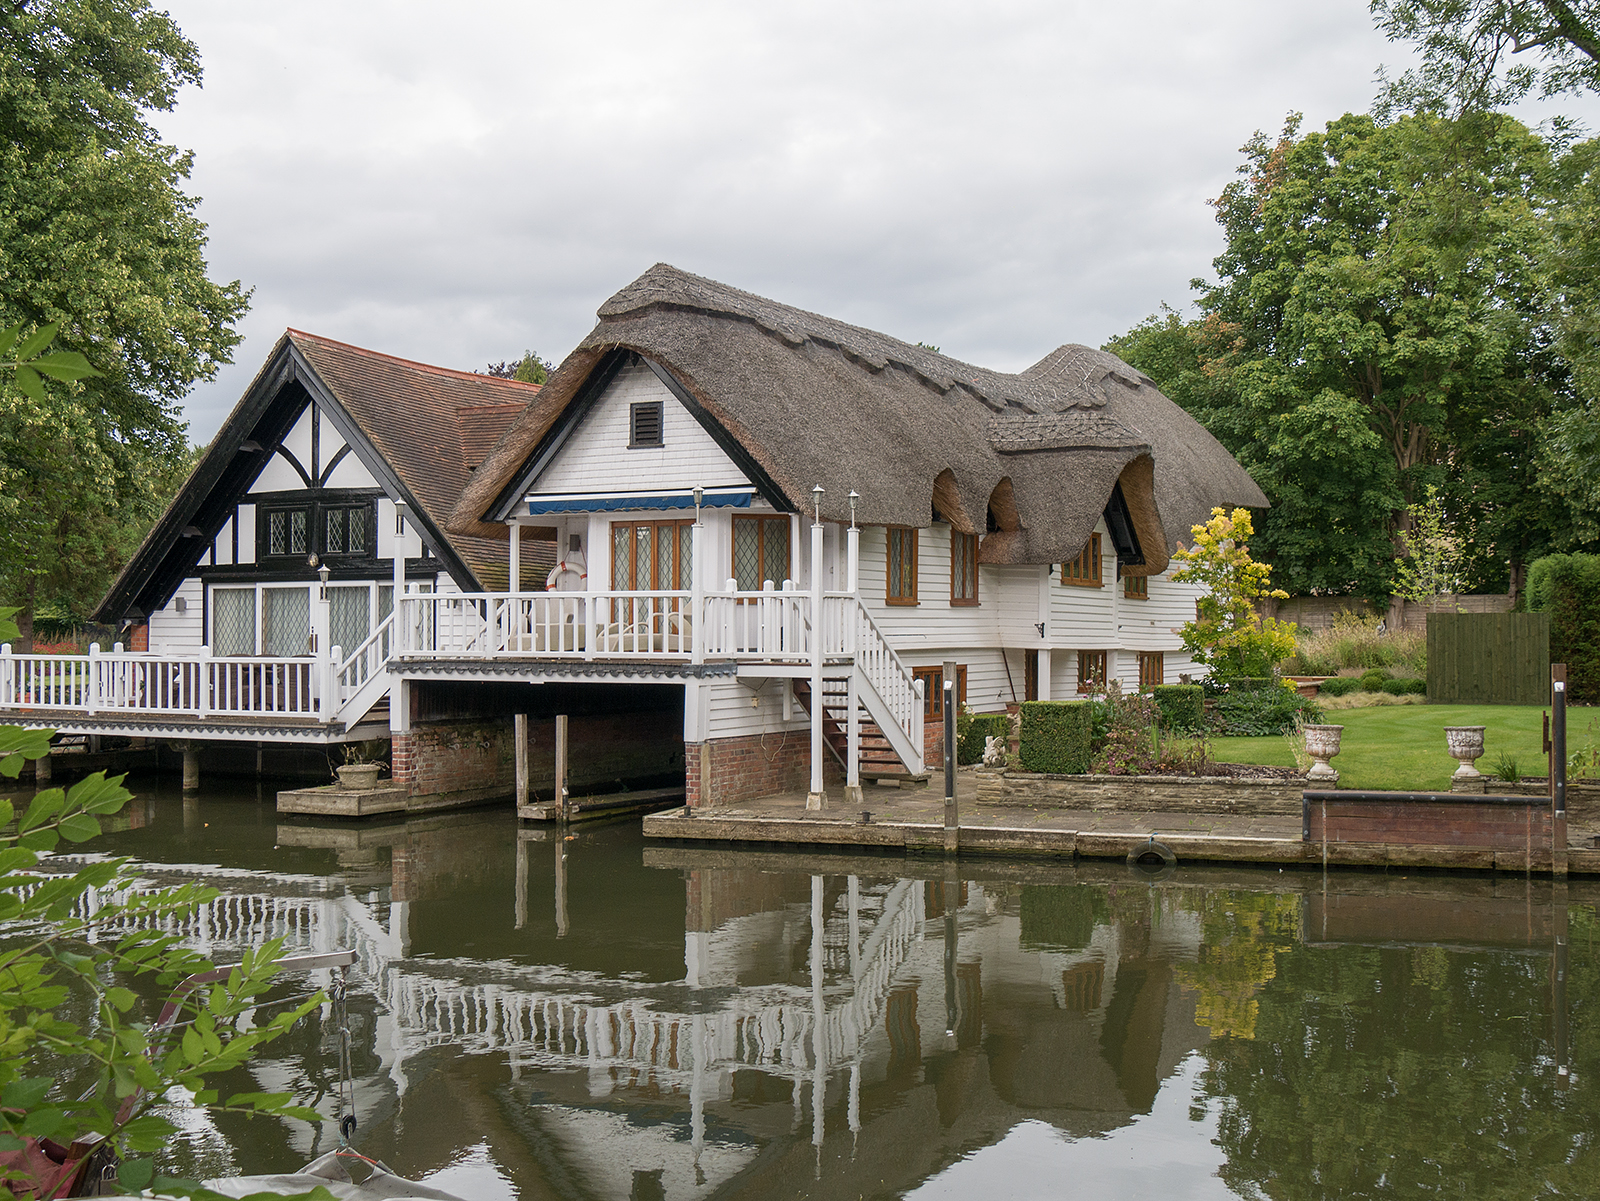 Riverside house at Goring Lock